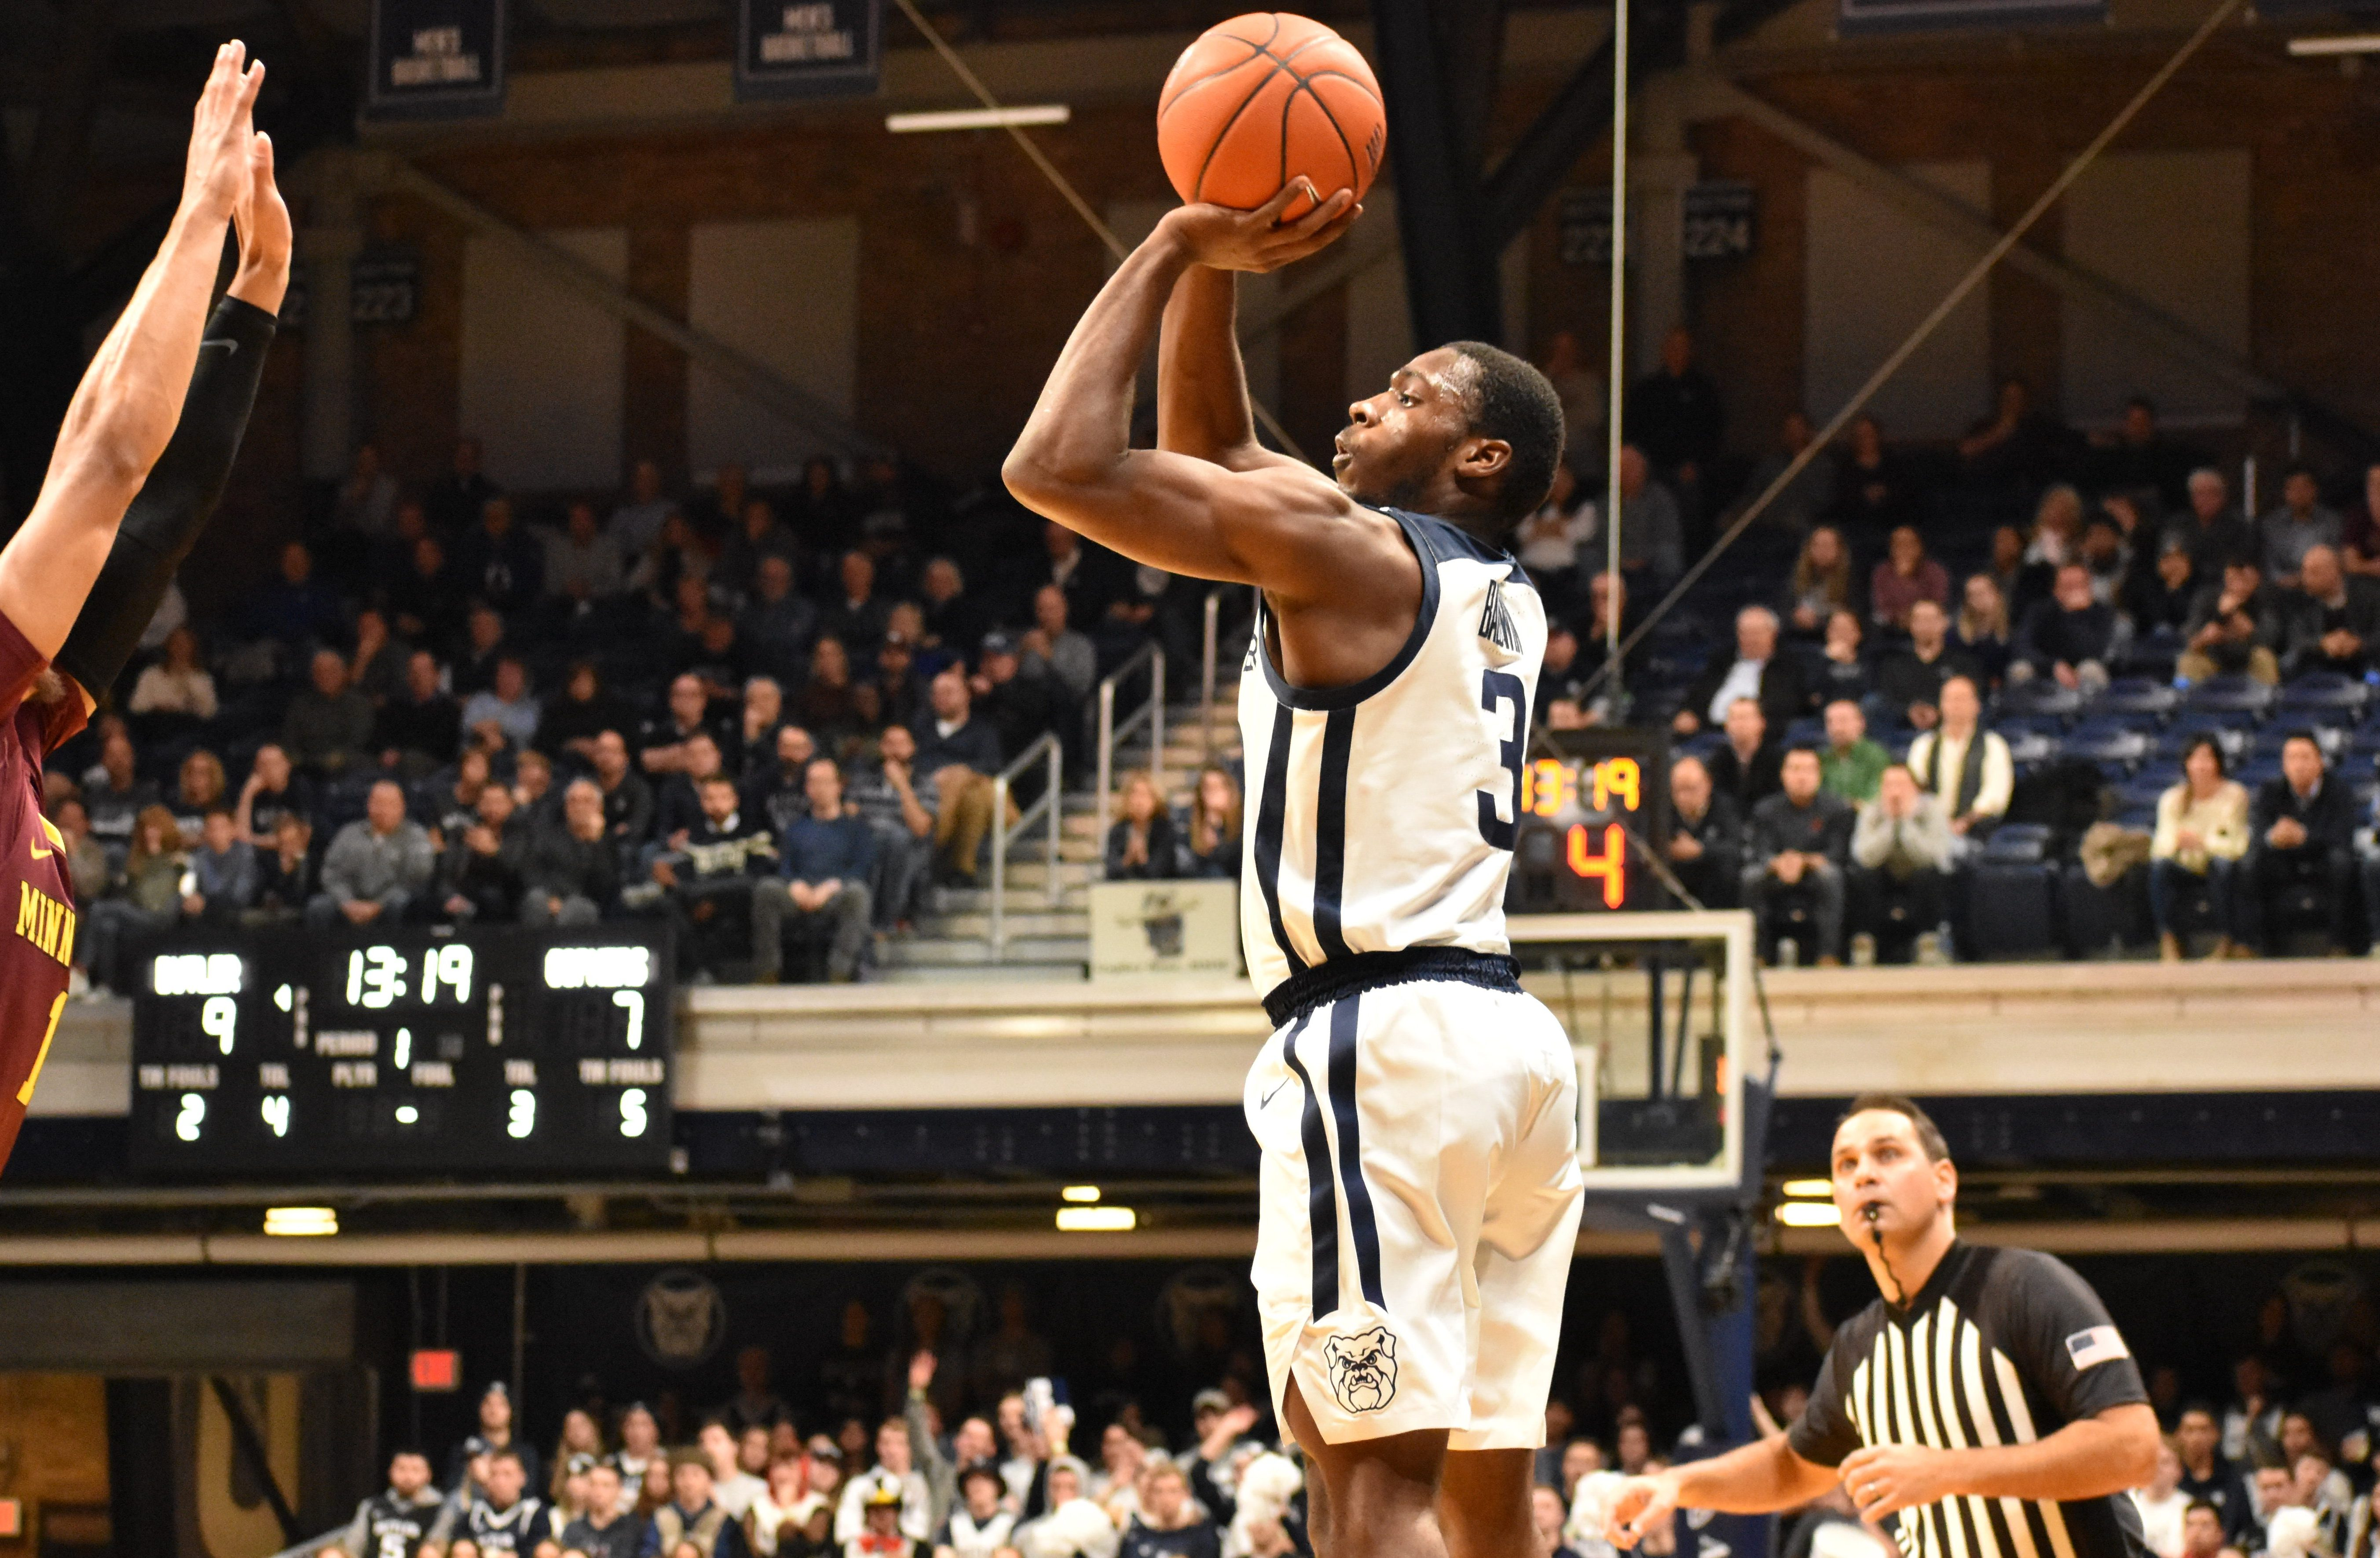 Mizzou loses to Butler in Hall of Fame Classic